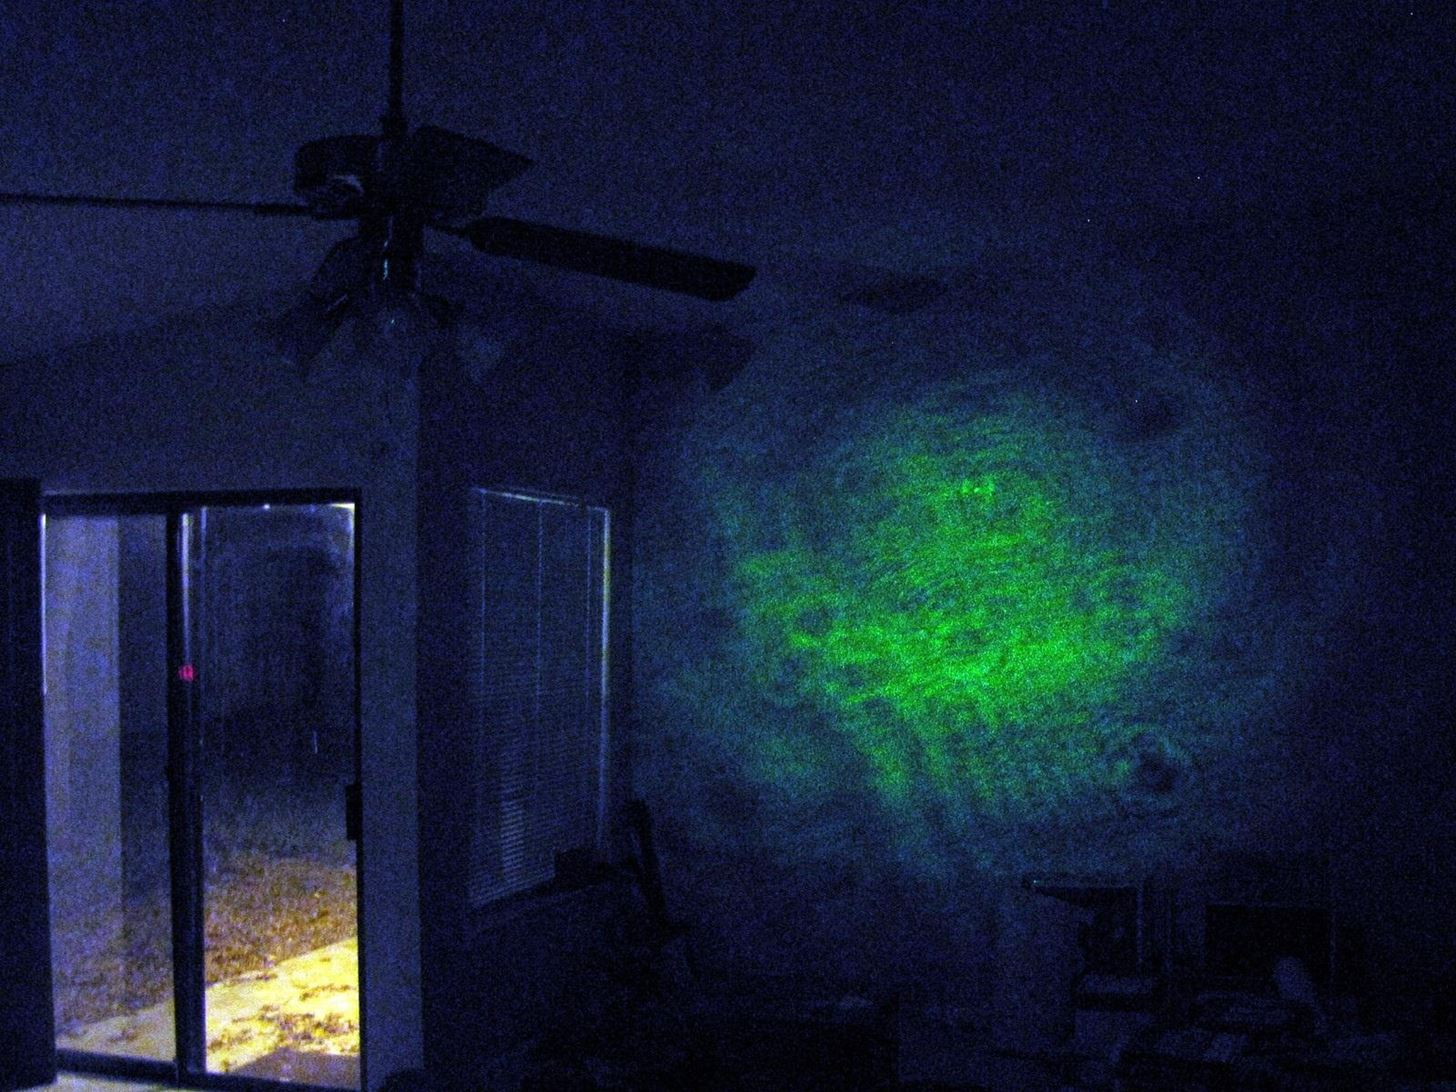 How to Build Your Own Projection Microscope with a Syringe, Laser Pointer, and Drop of Water